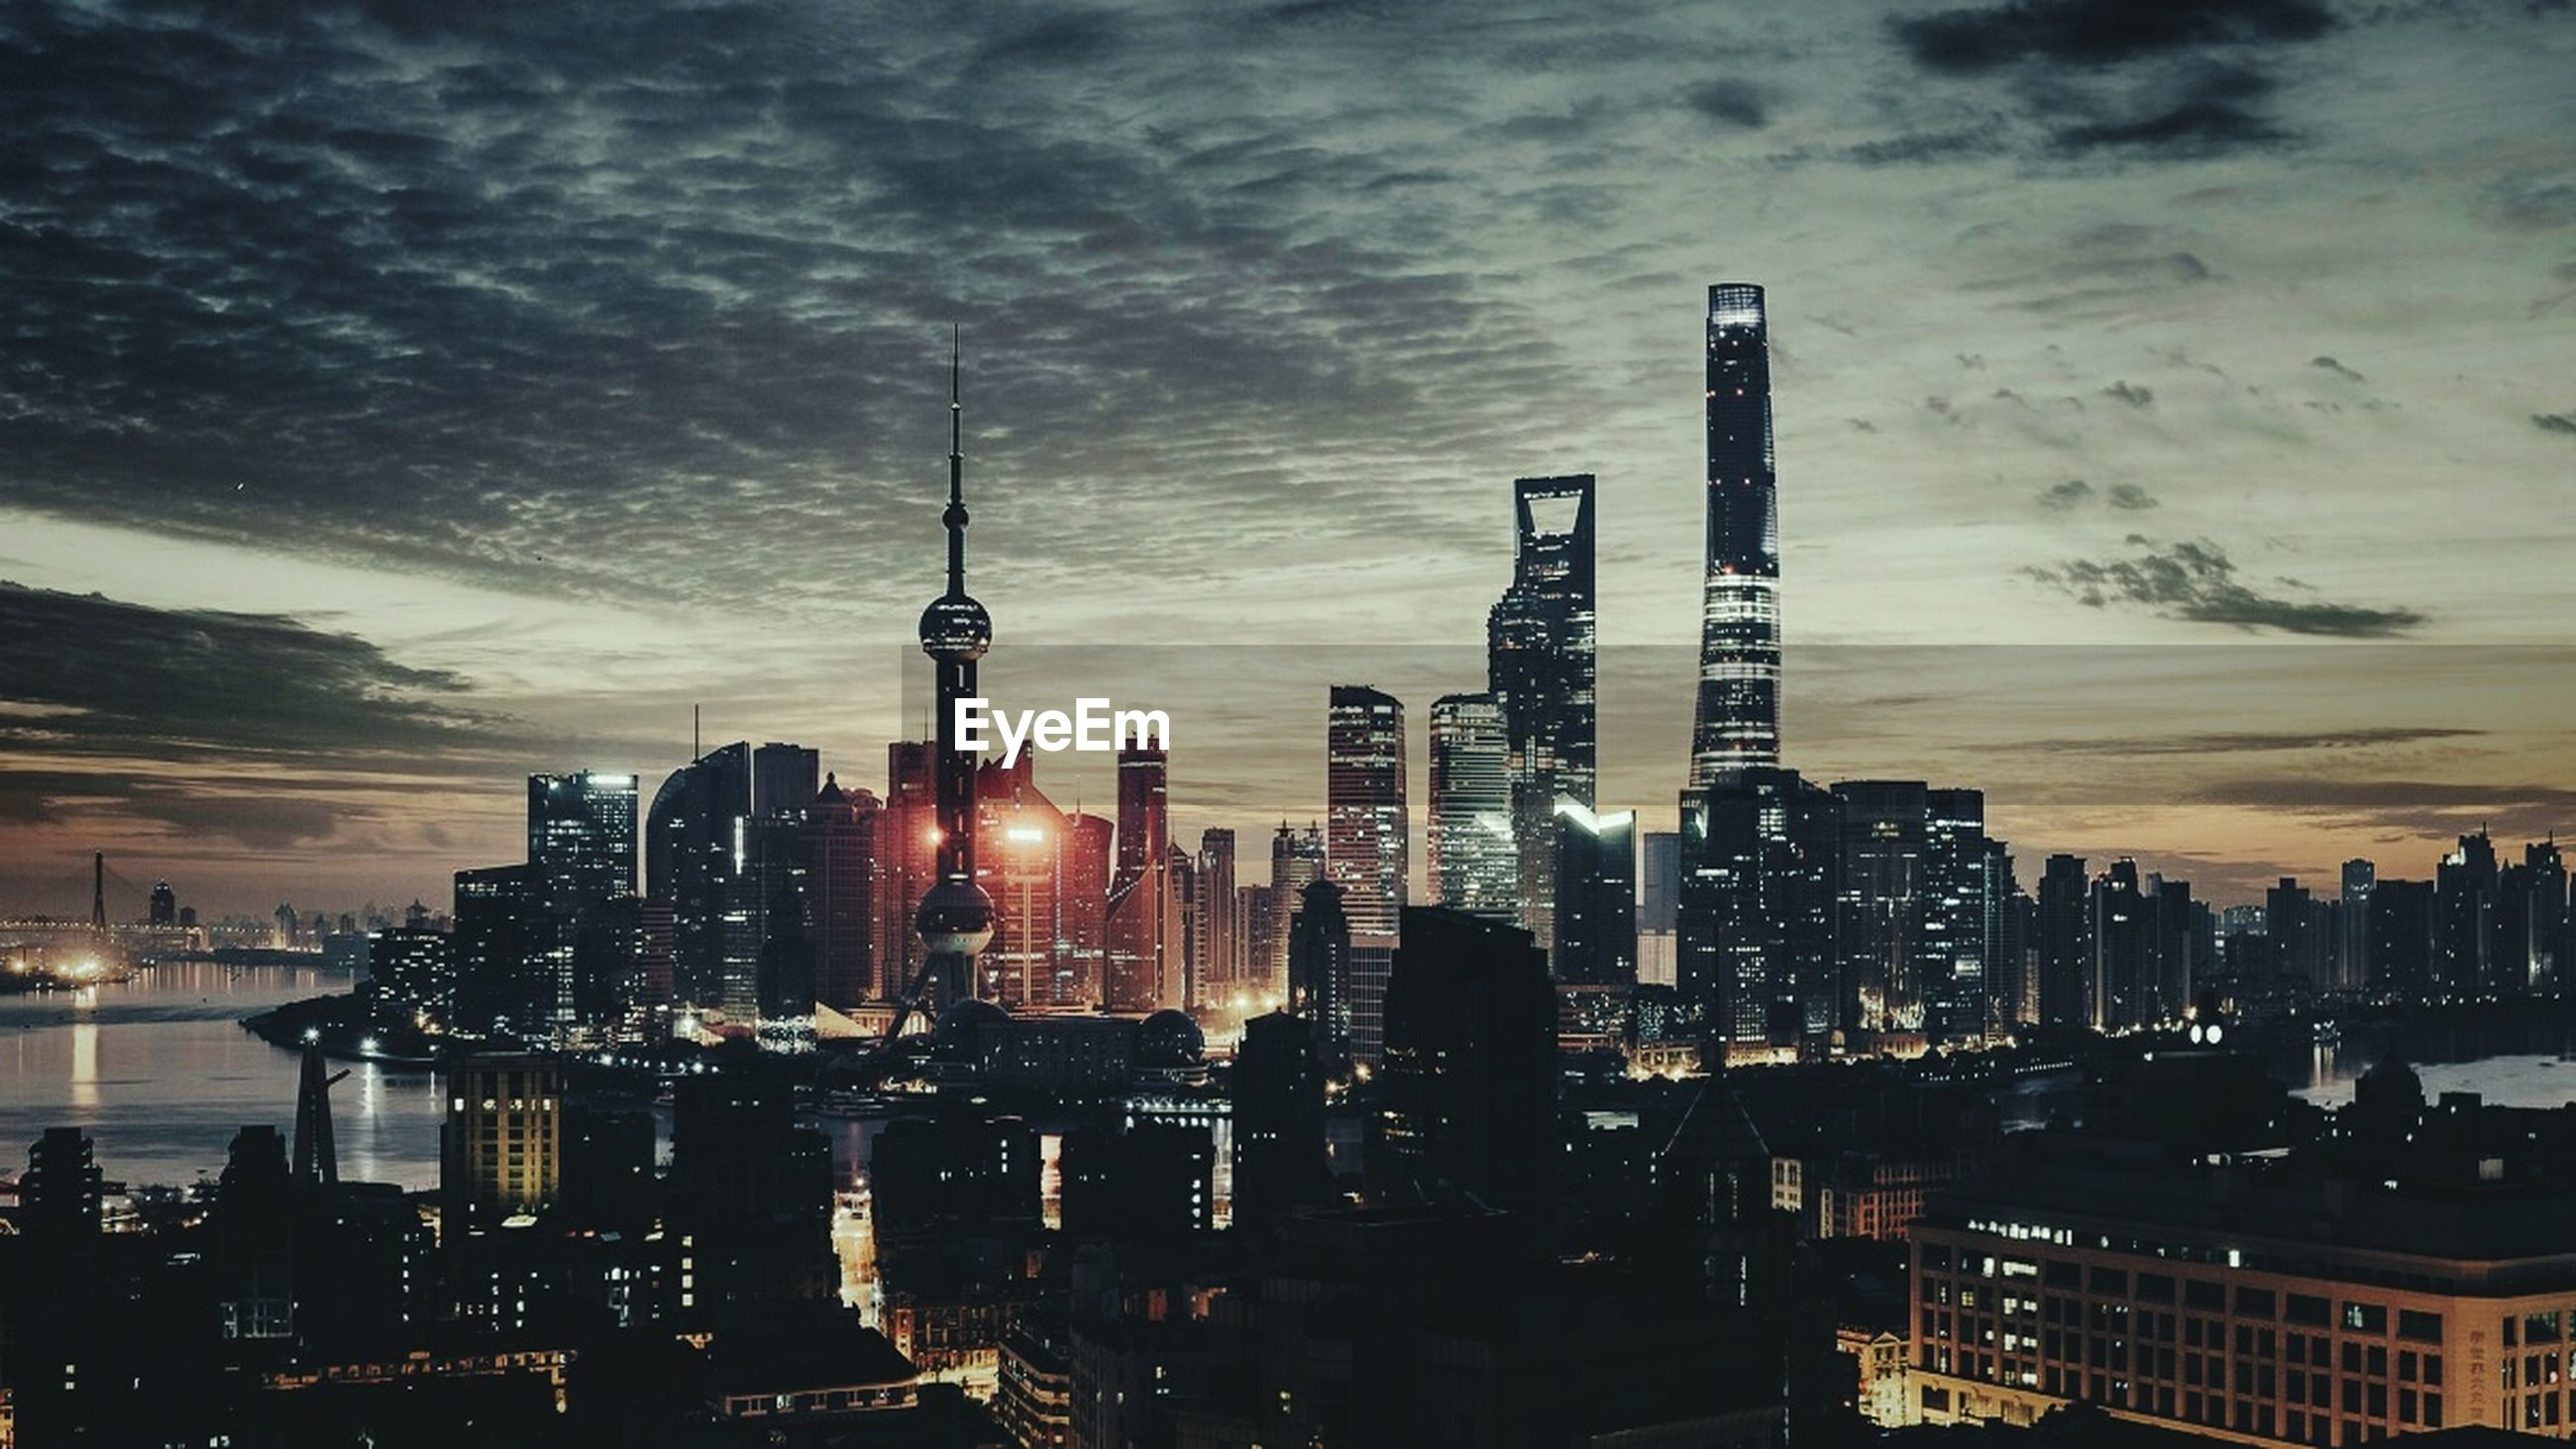 skyscraper, urban skyline, city, cityscape, travel destinations, building exterior, business, modern, outdoors, sky, business finance and industry, no people, downtown district, night, architecture